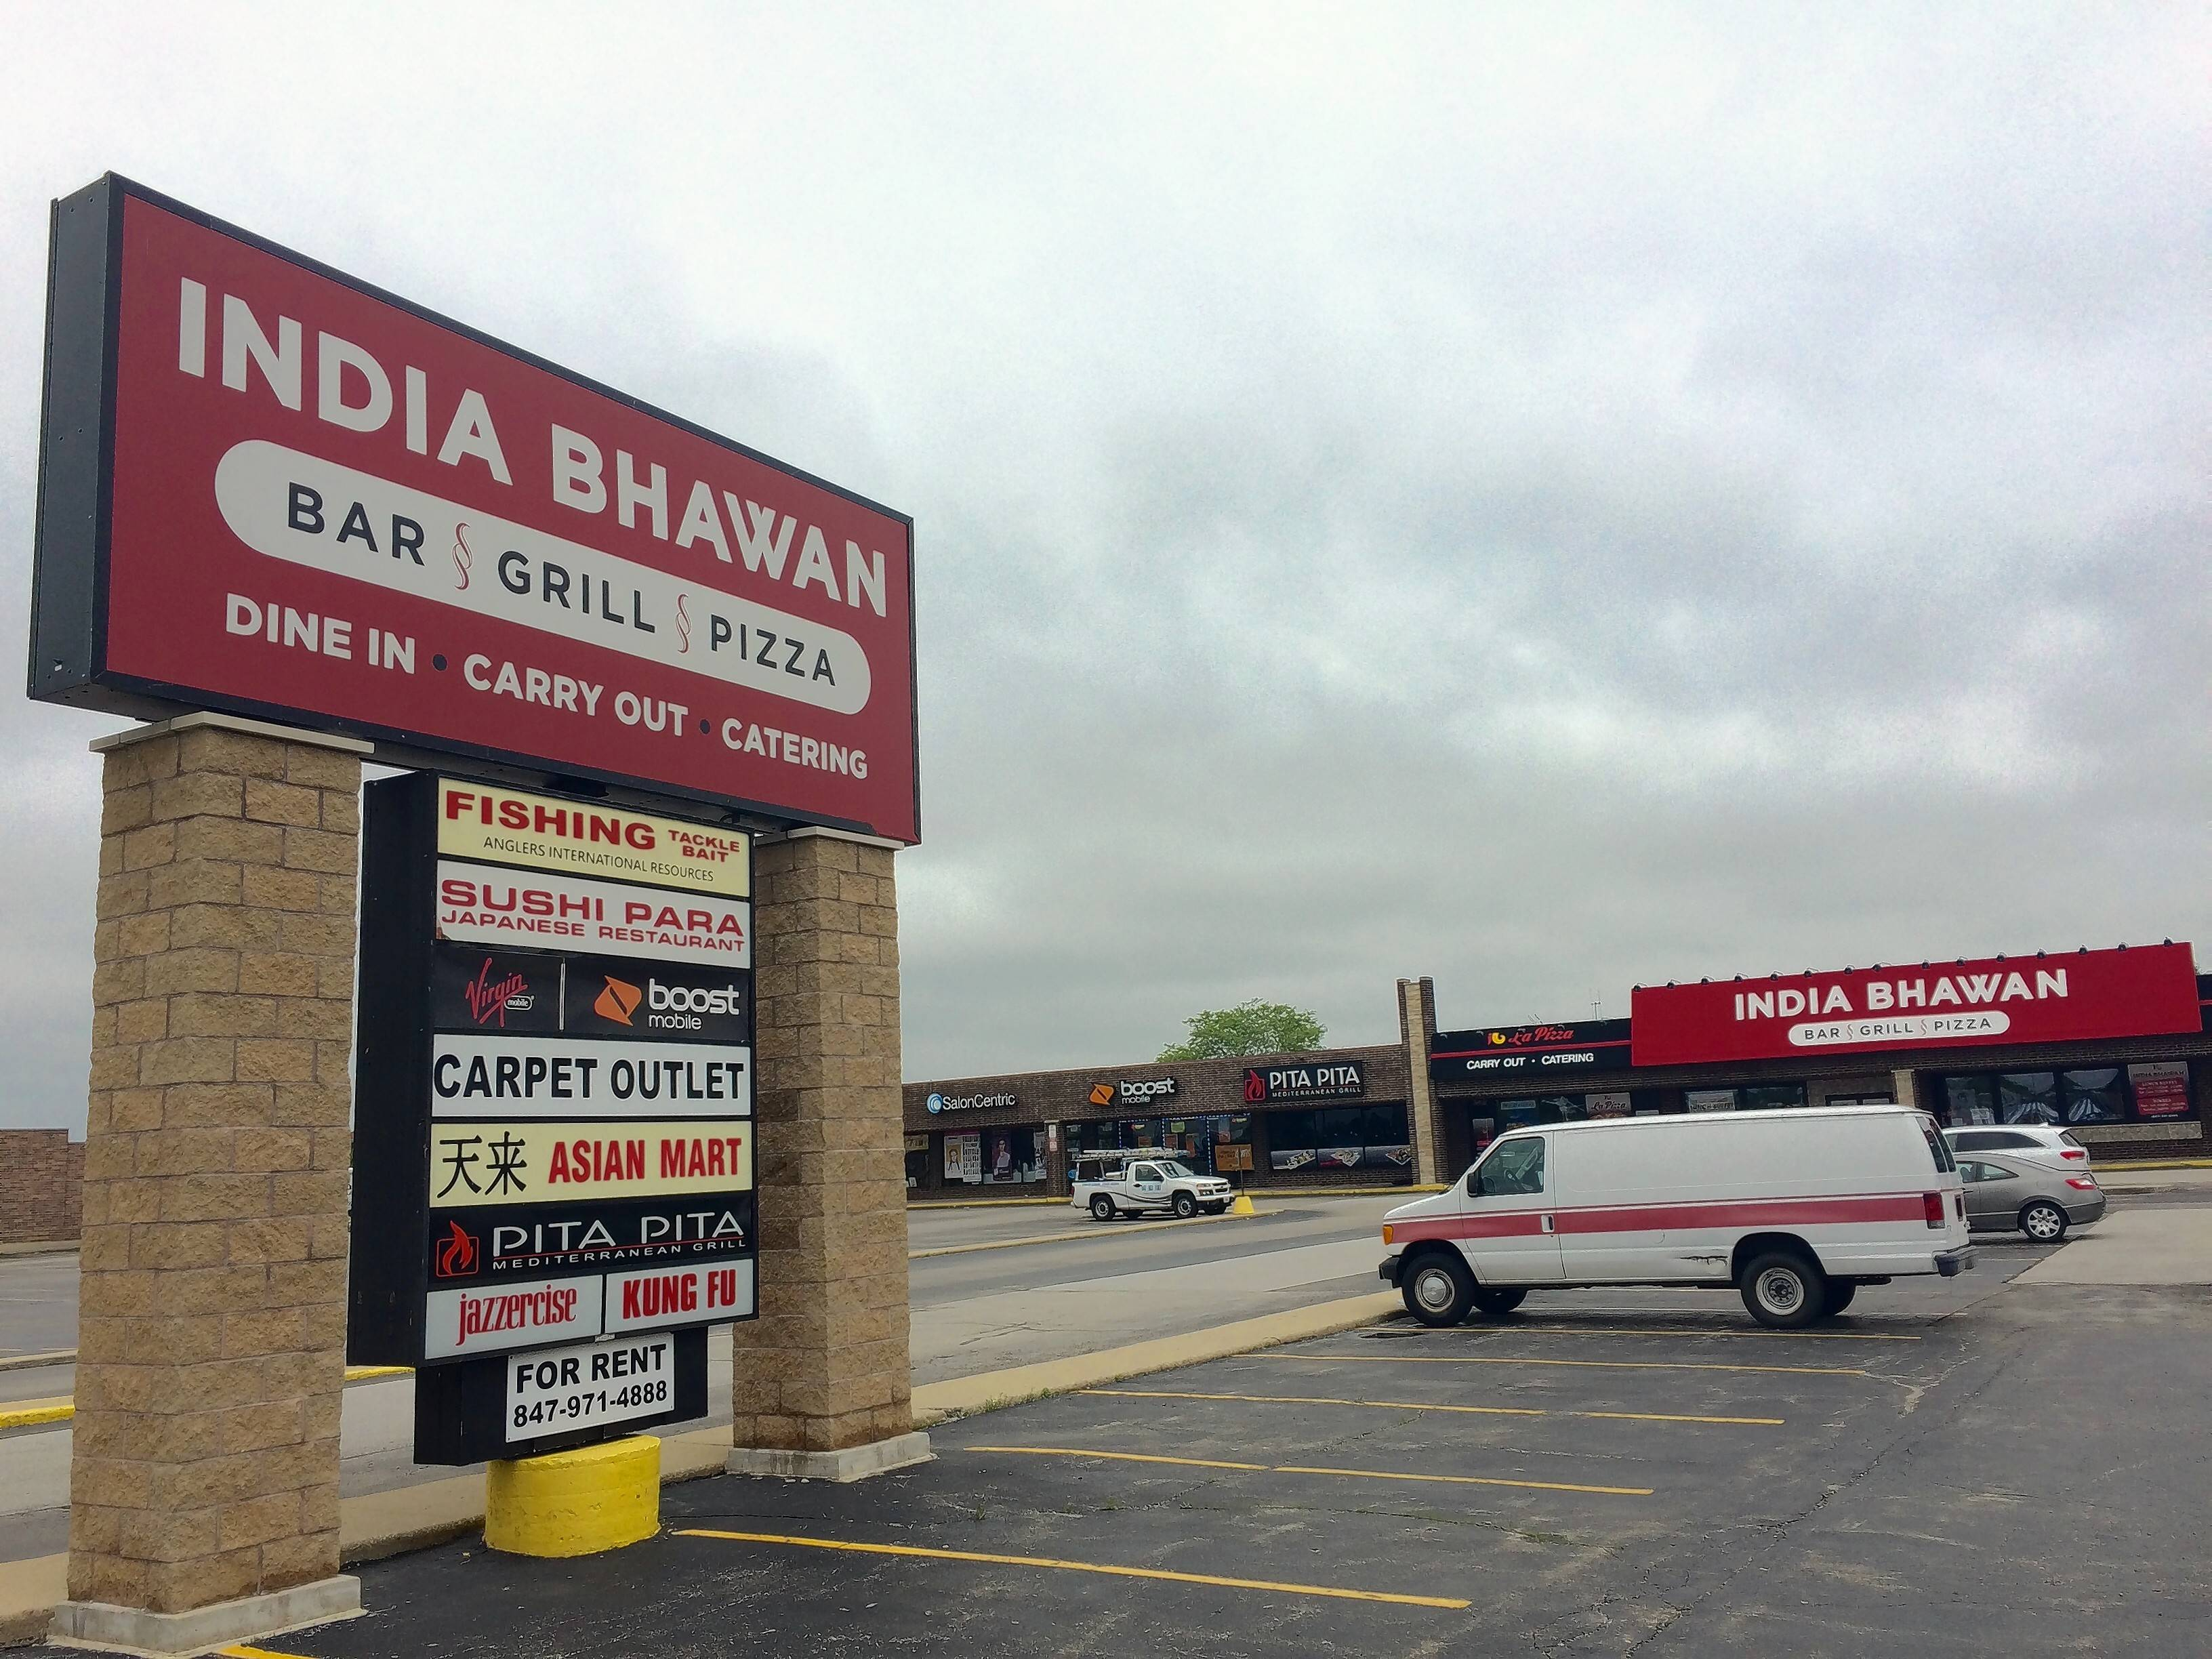 Palatine has reclaimed a liquor license previously issued to the India Bhawan restaurant on Dundee Road. The eatery closed as part of an agreed order with the village.